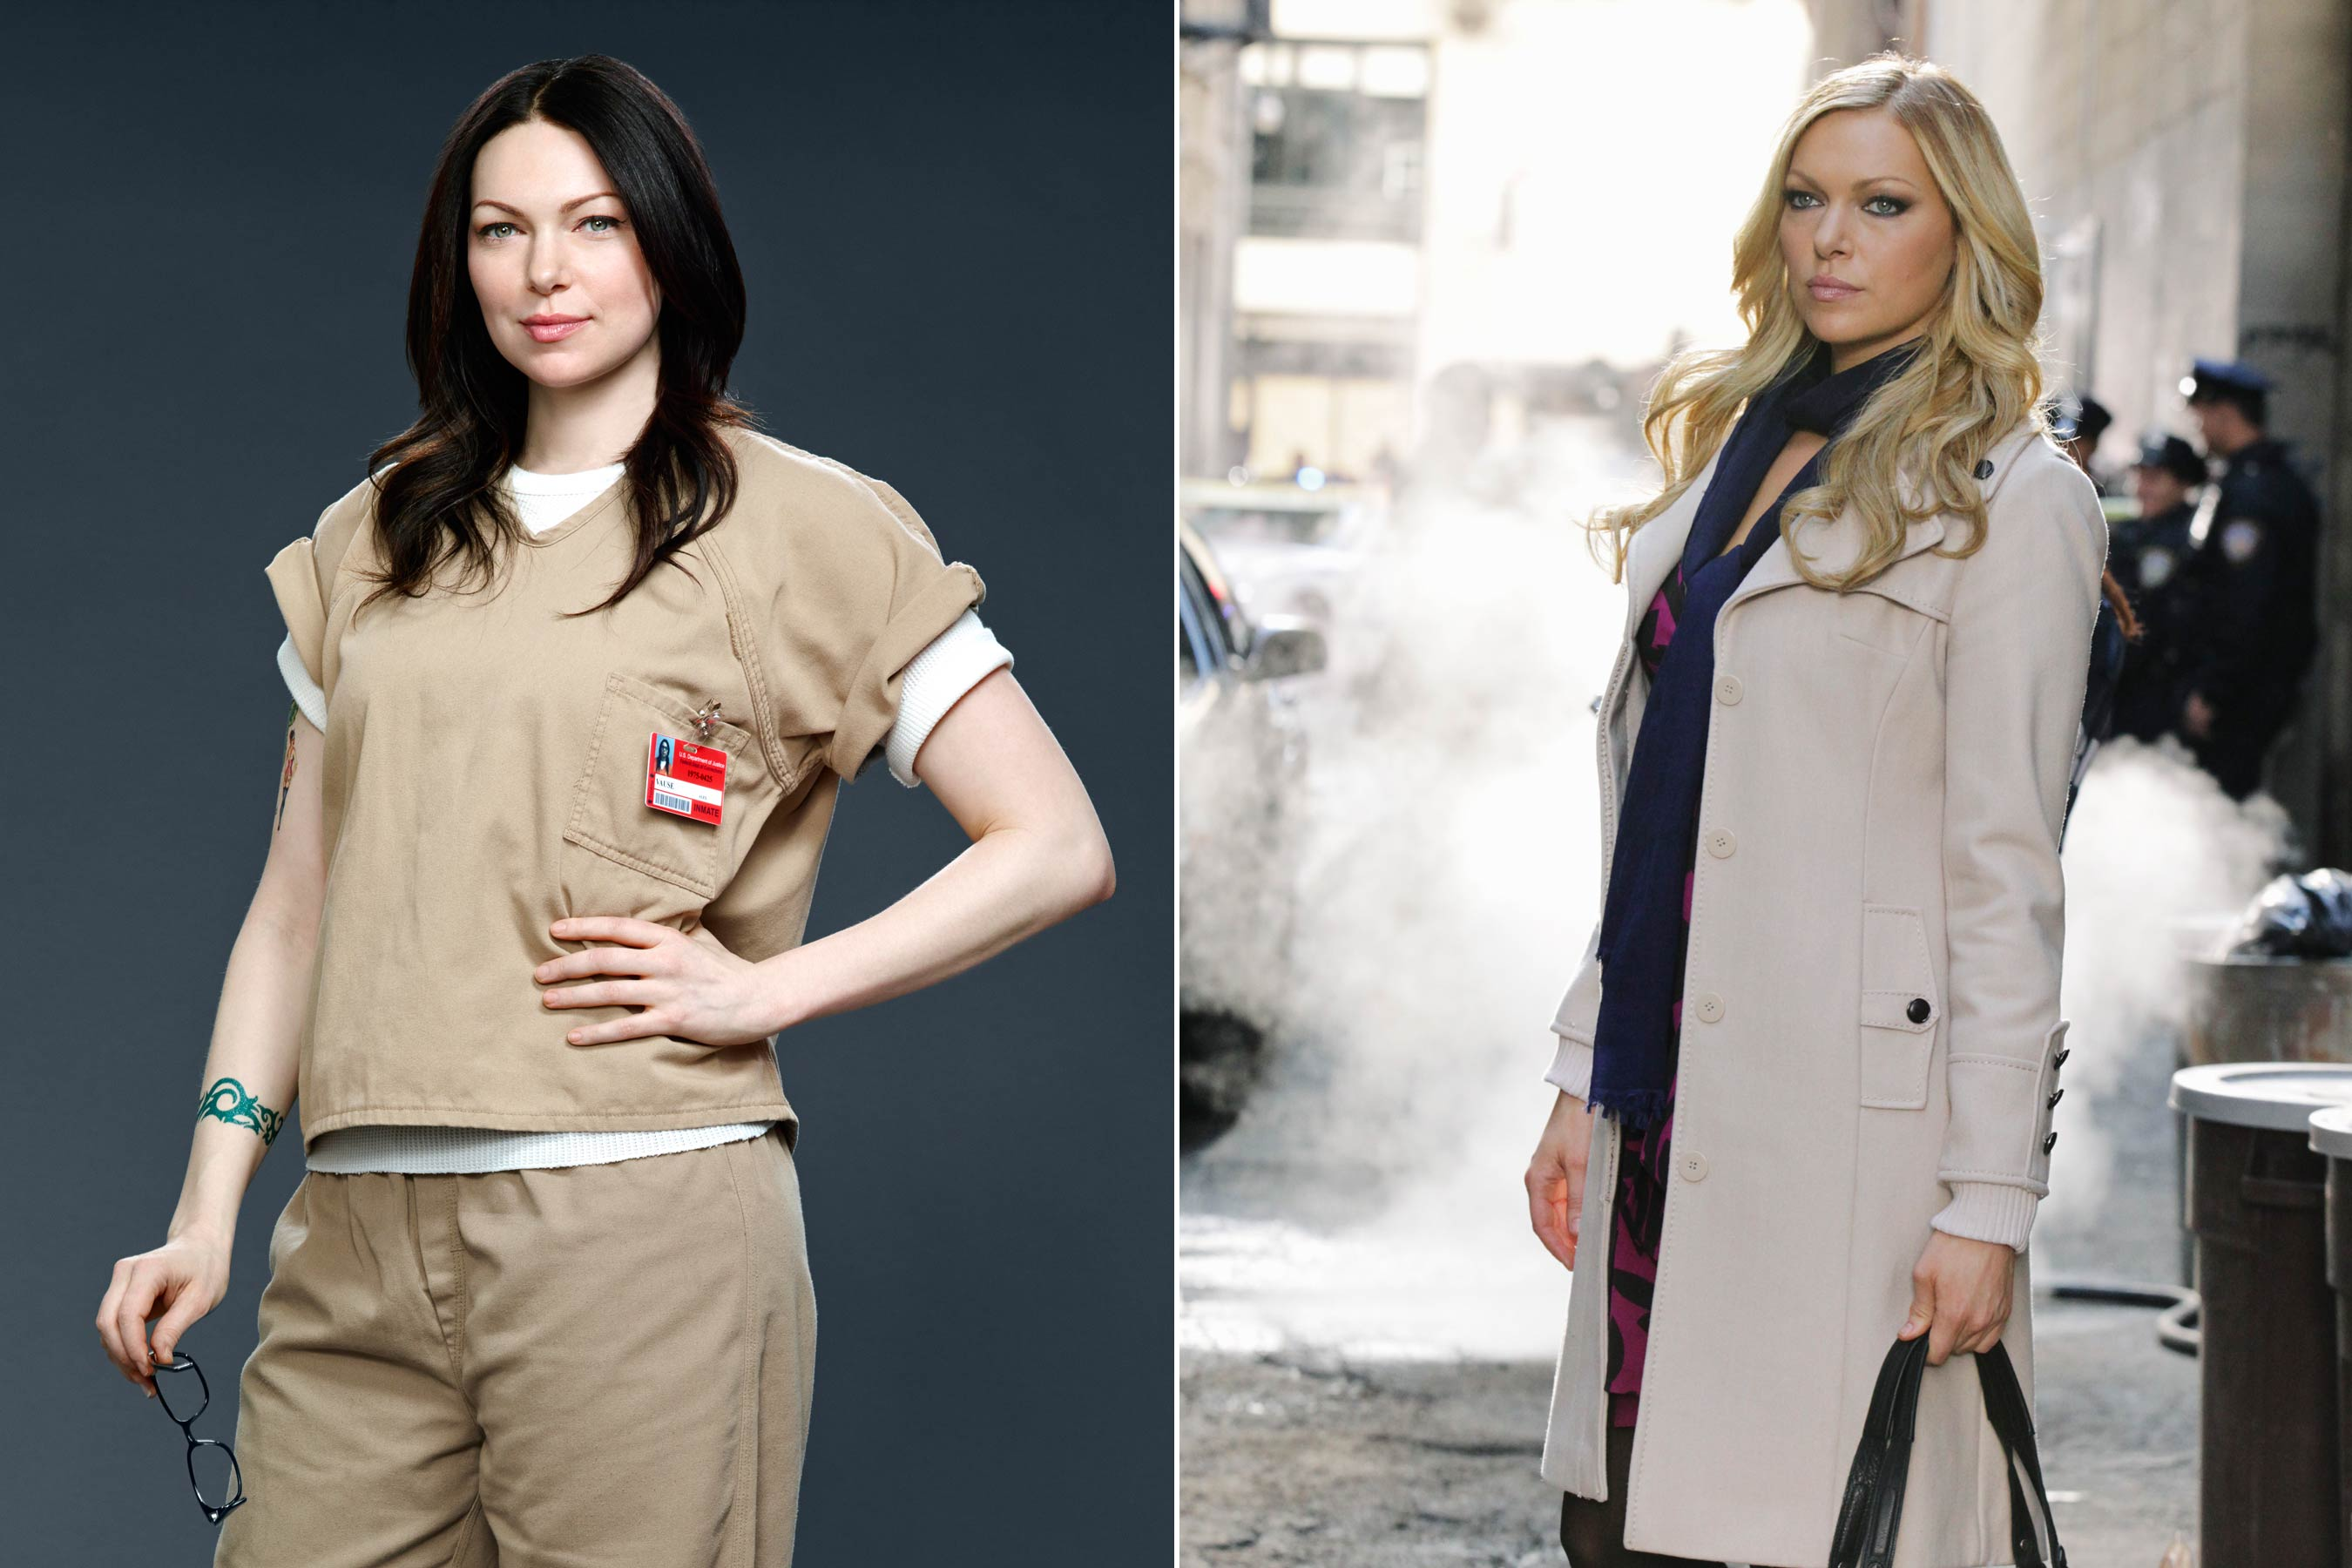 Before Laura Prepon played Alex Vause on Orange Is the New Black she guest starred as Natalie Rhodes on Castle.